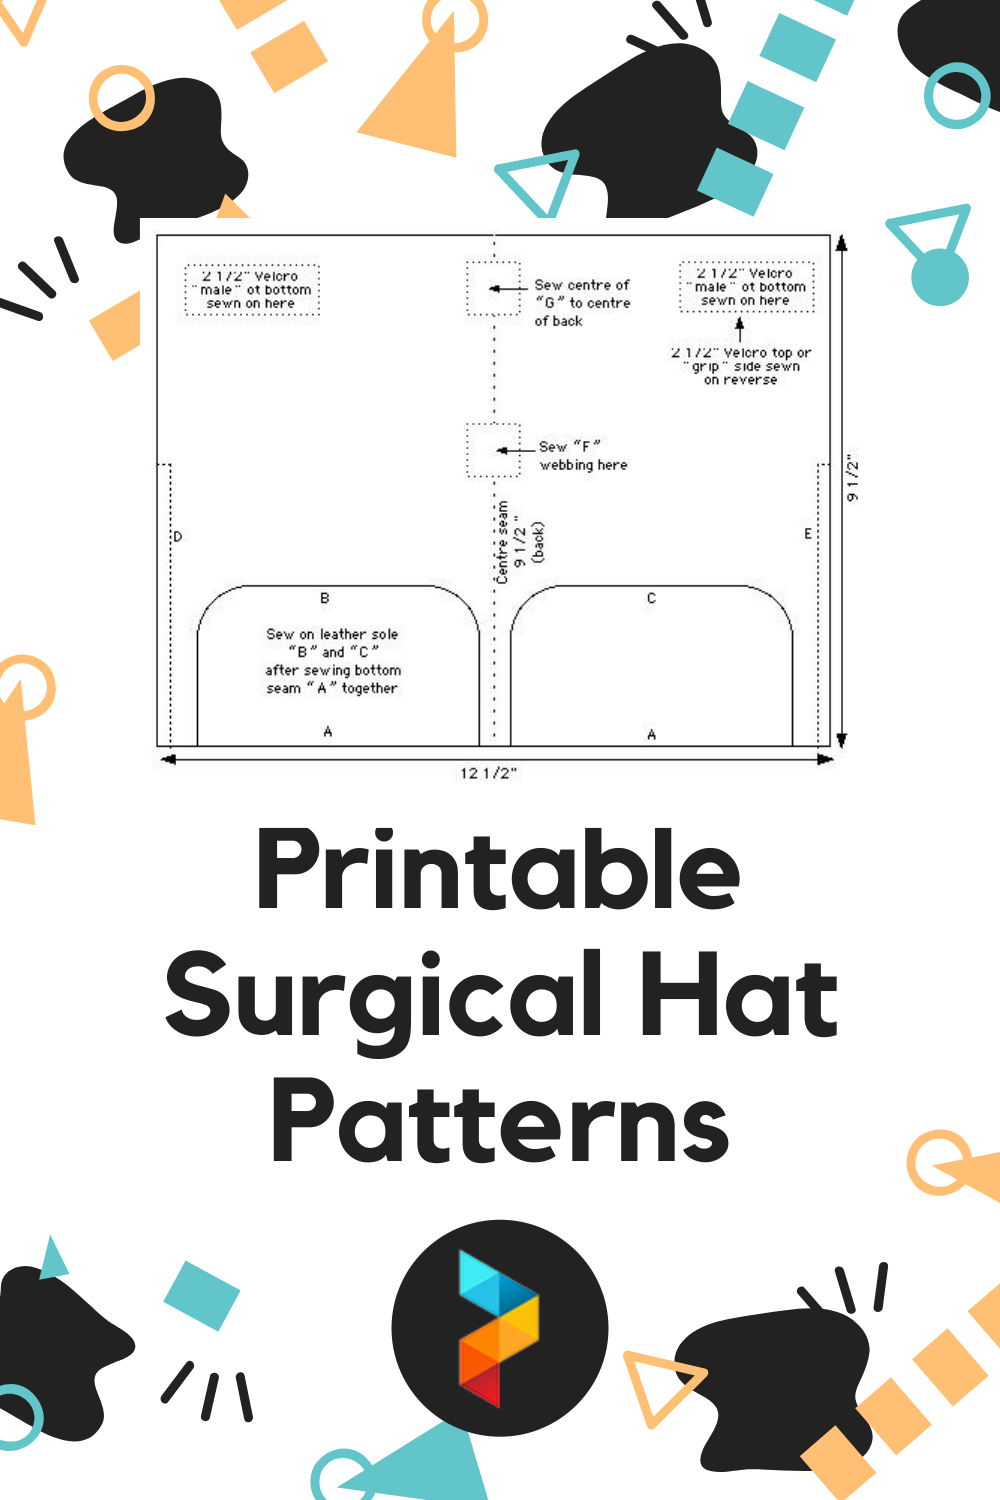 Printable Surgical Hat Patterns